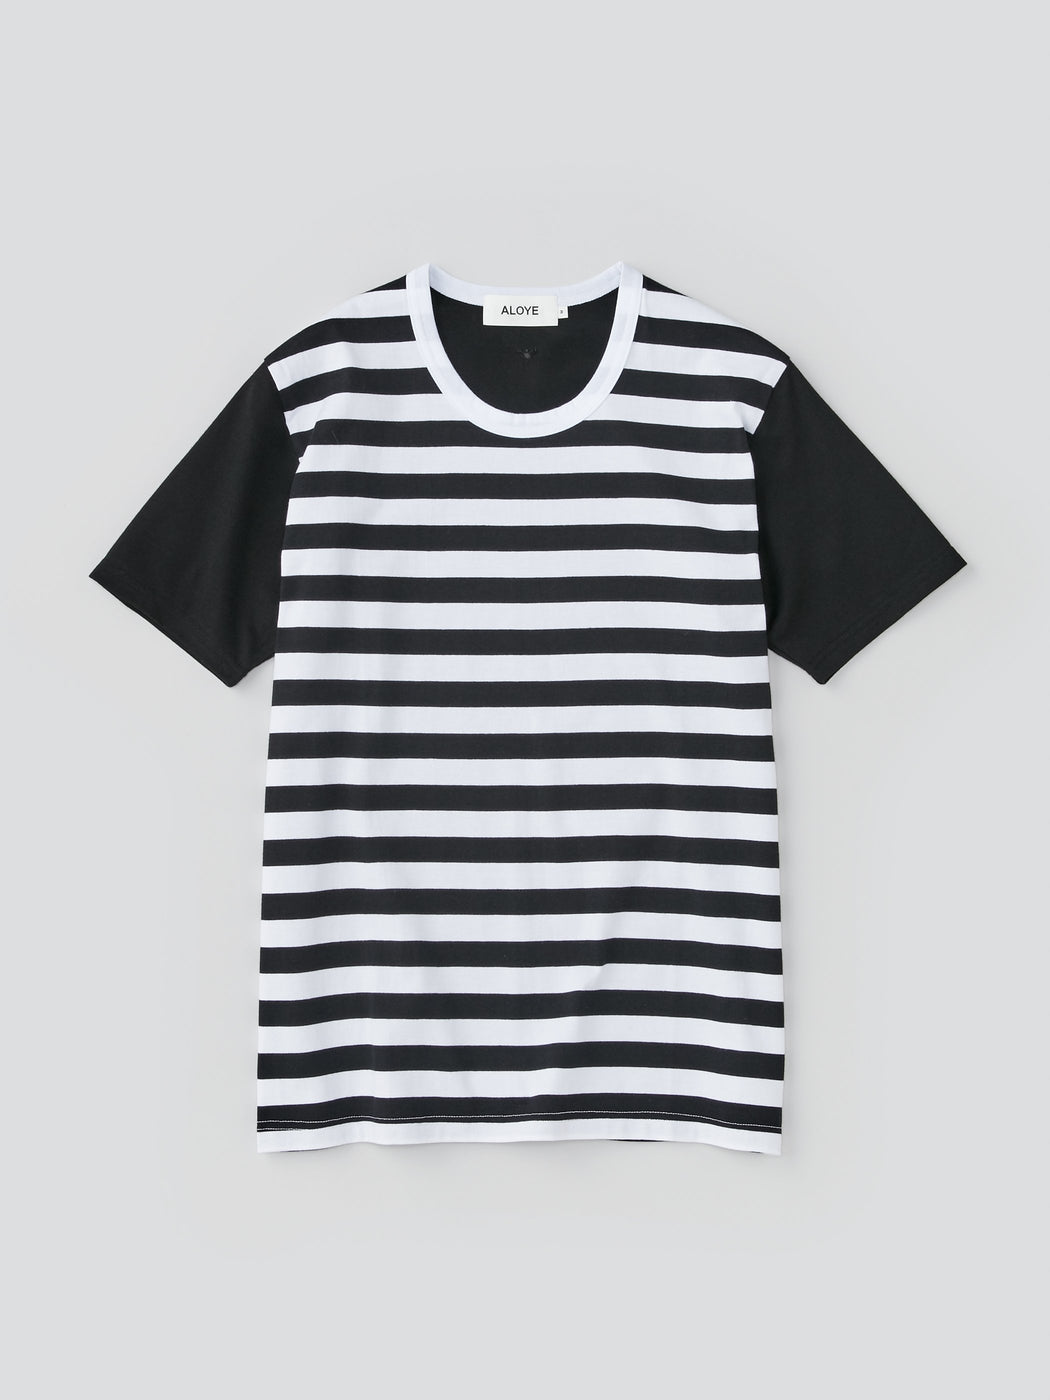 ALOYE Dots & Stripes Men's Short Sleeve T-shirt Black Stripe-Black Sleeve